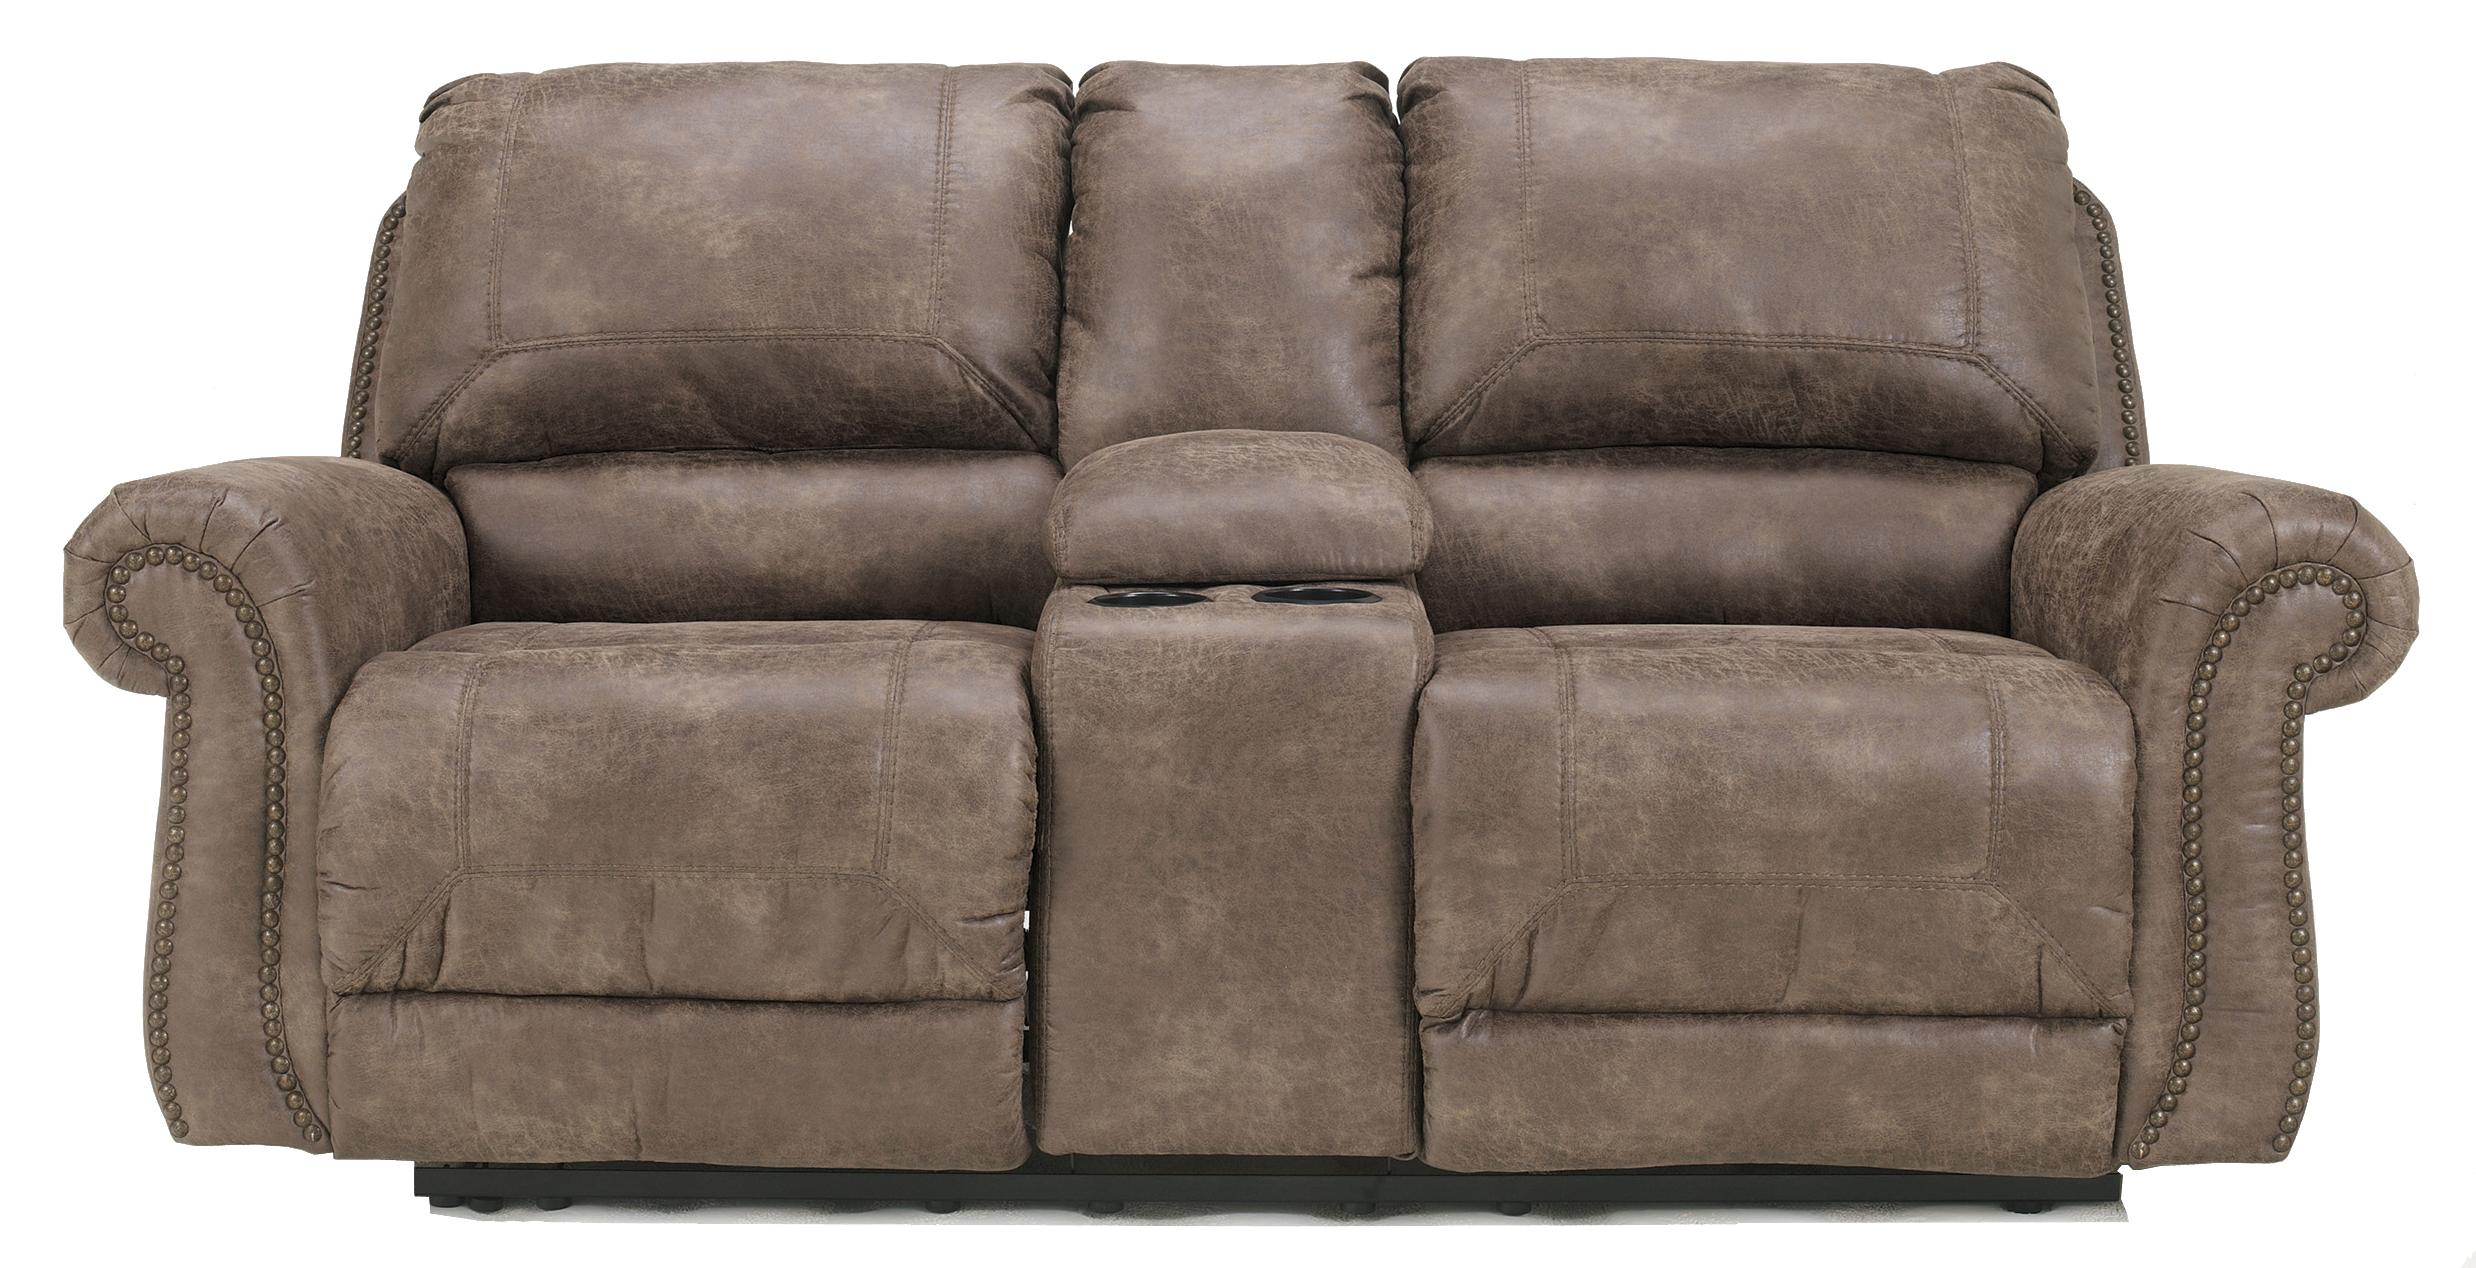 Ashley Signature Design Oberson Gunsmoke 7410096 Double Reclining Power Loveseat W Console